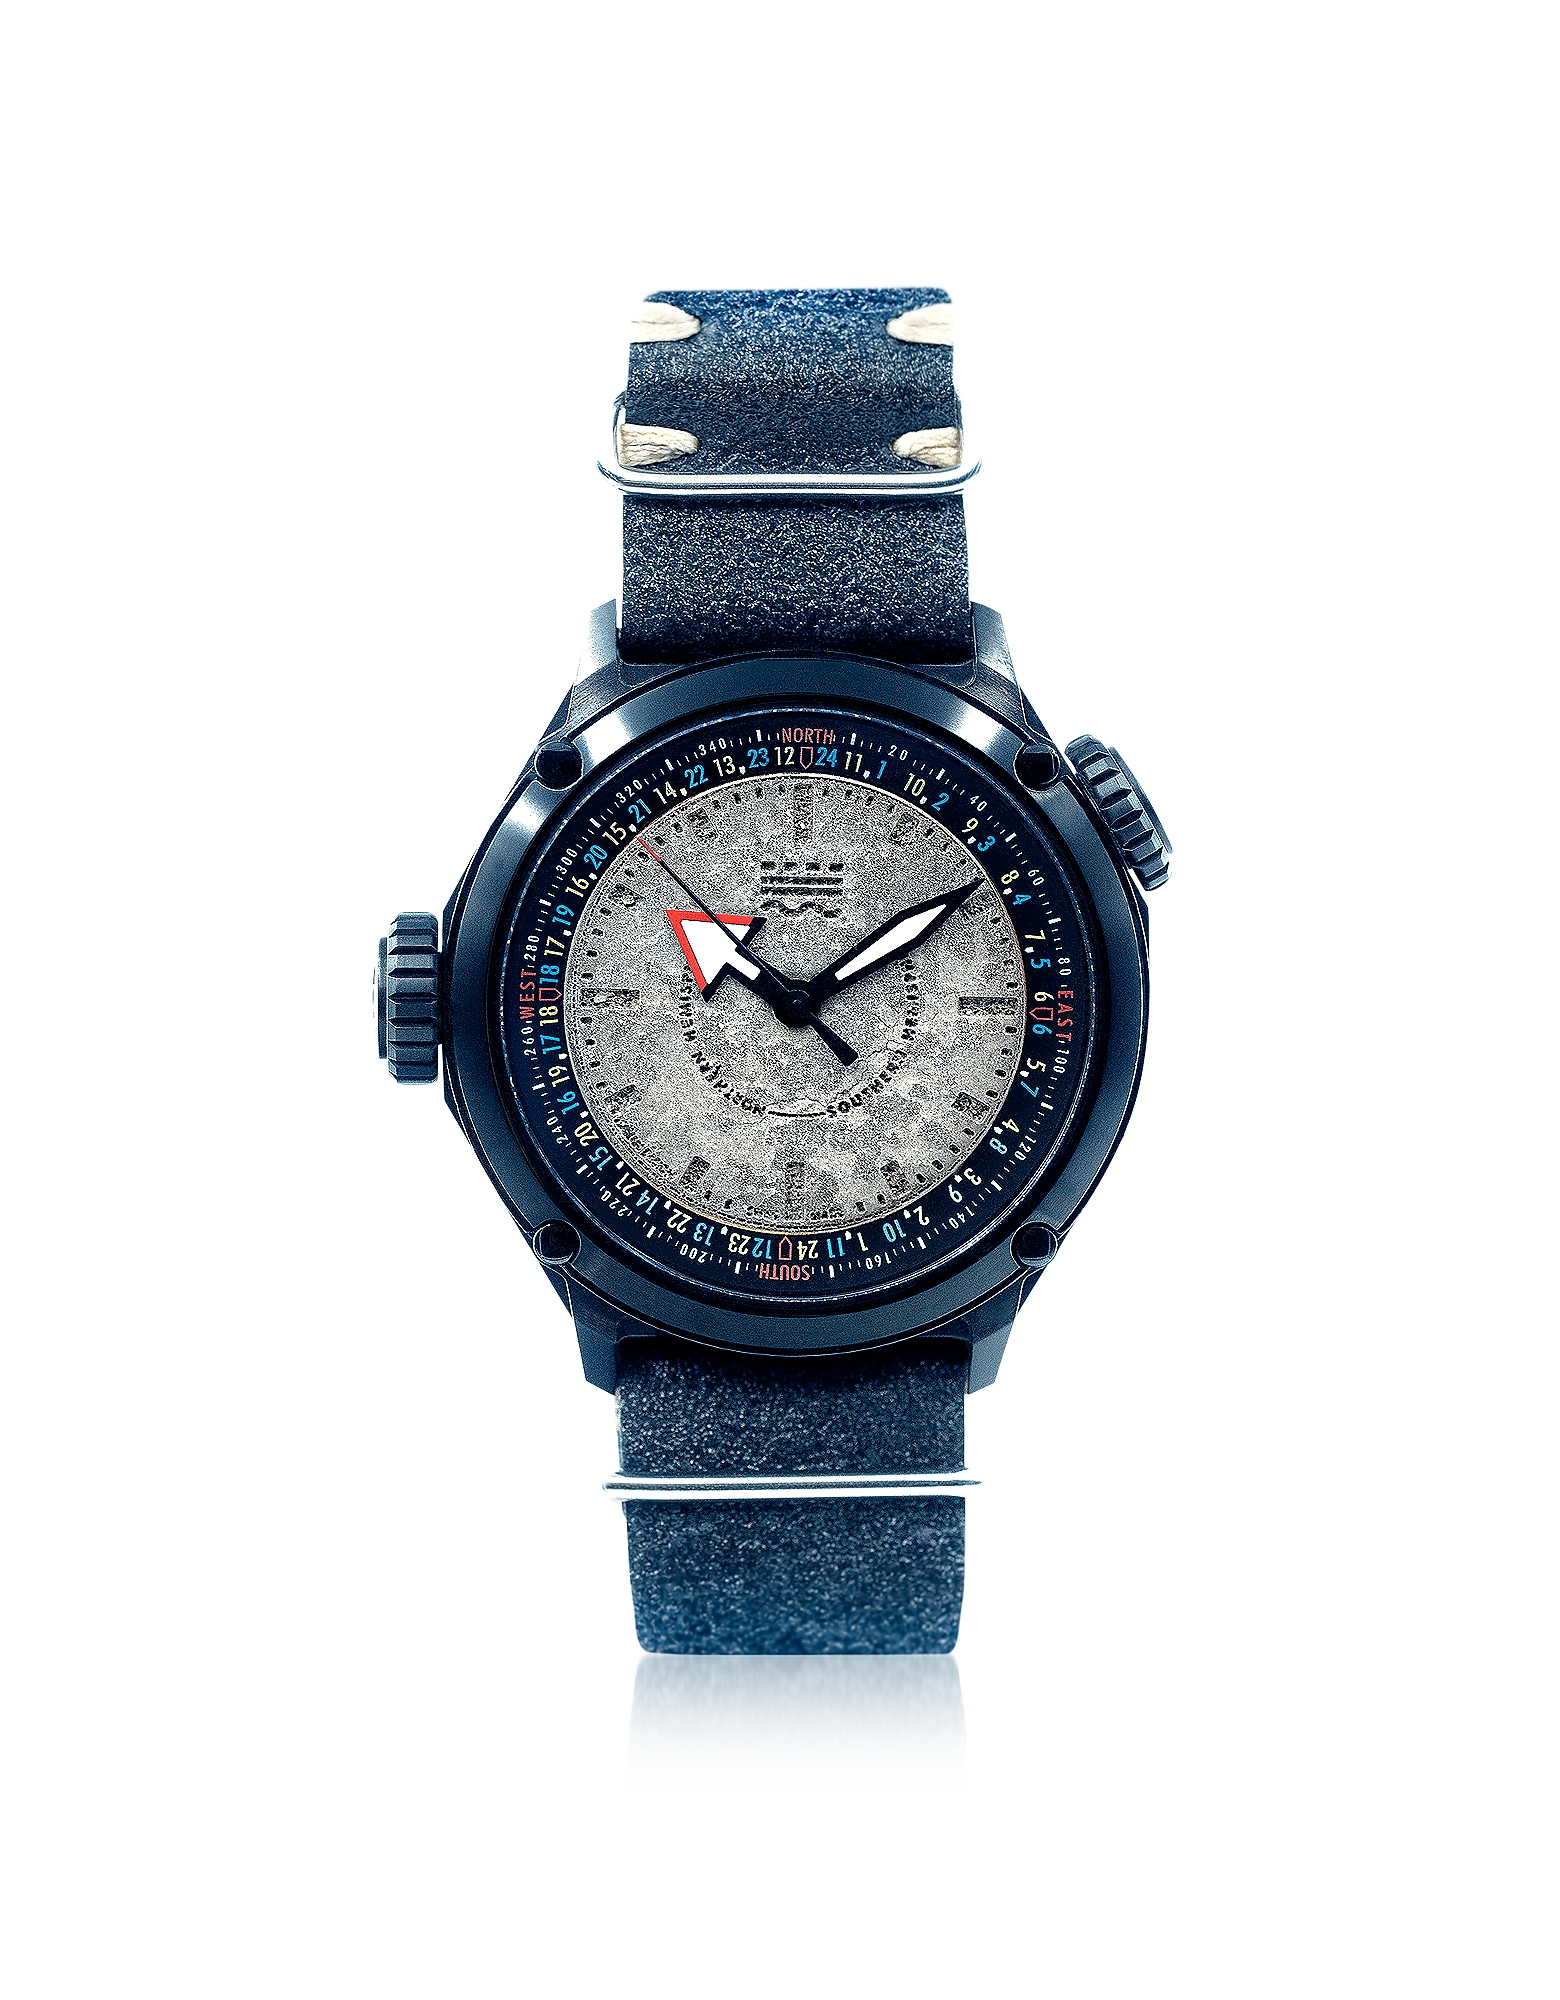 Terra Cielo Mare Men's Watches, Orienteering Concrete Watch